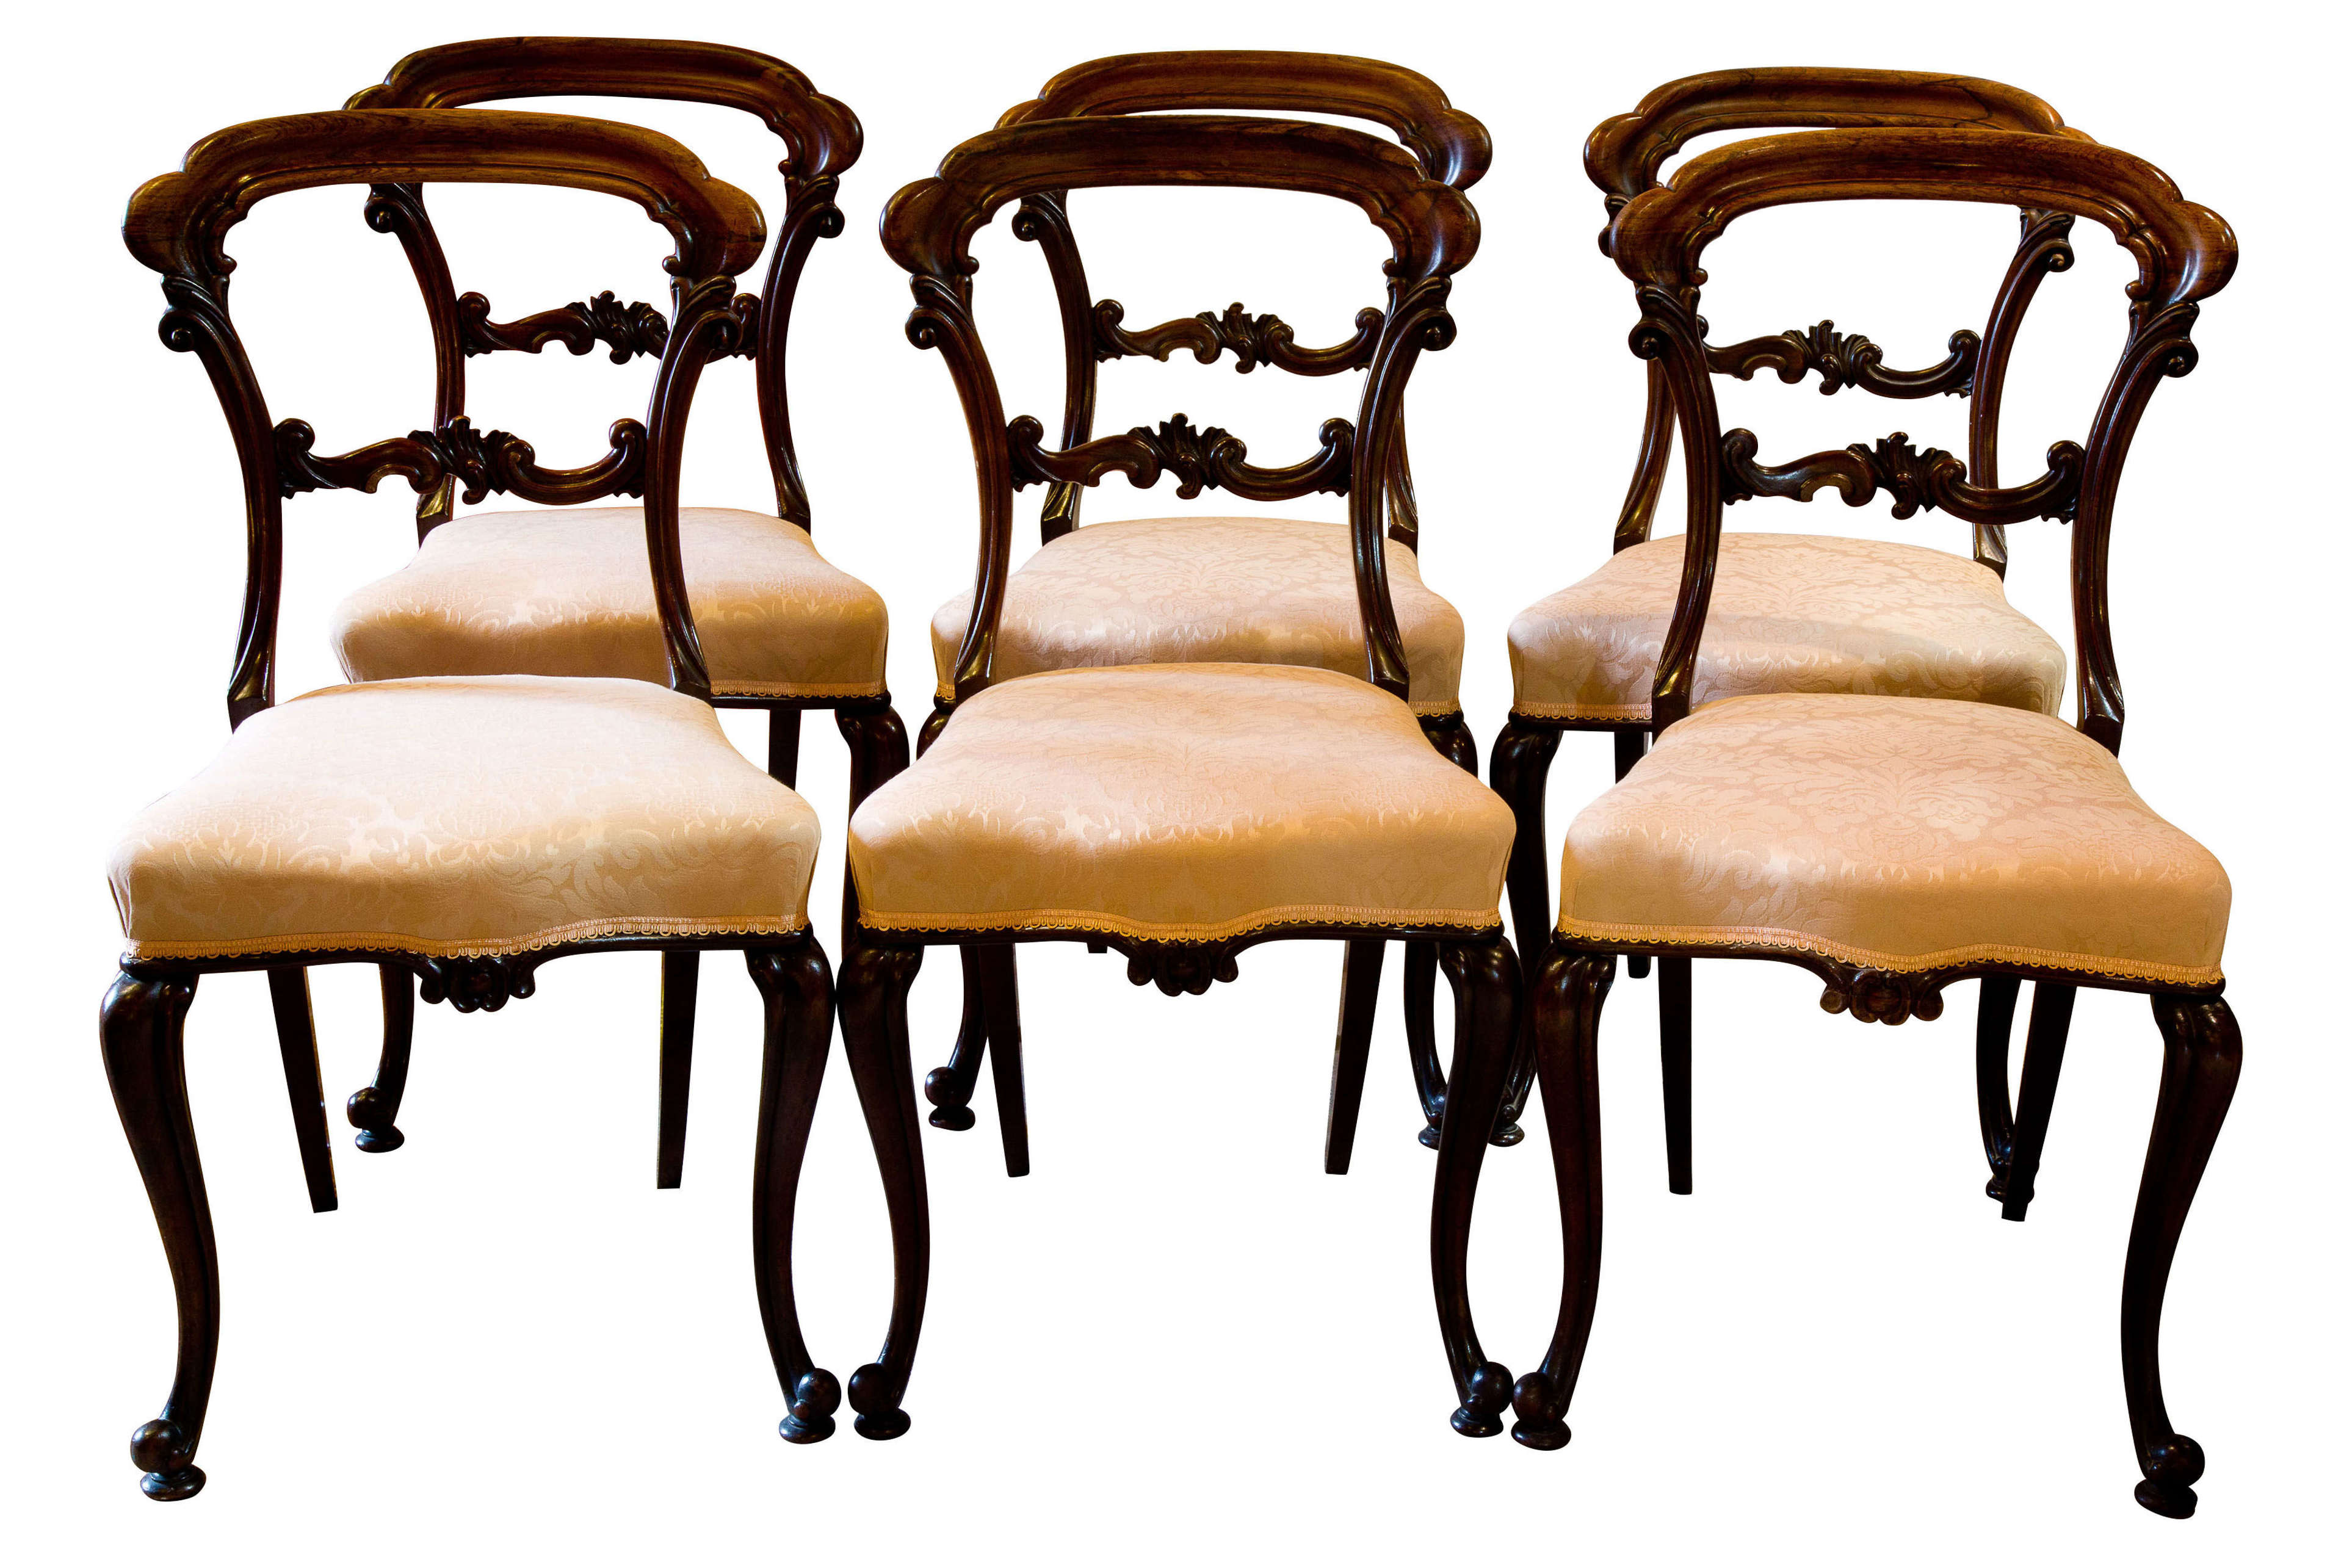 Set of 6 Victorian Solid Rosewood Chairs c 1850